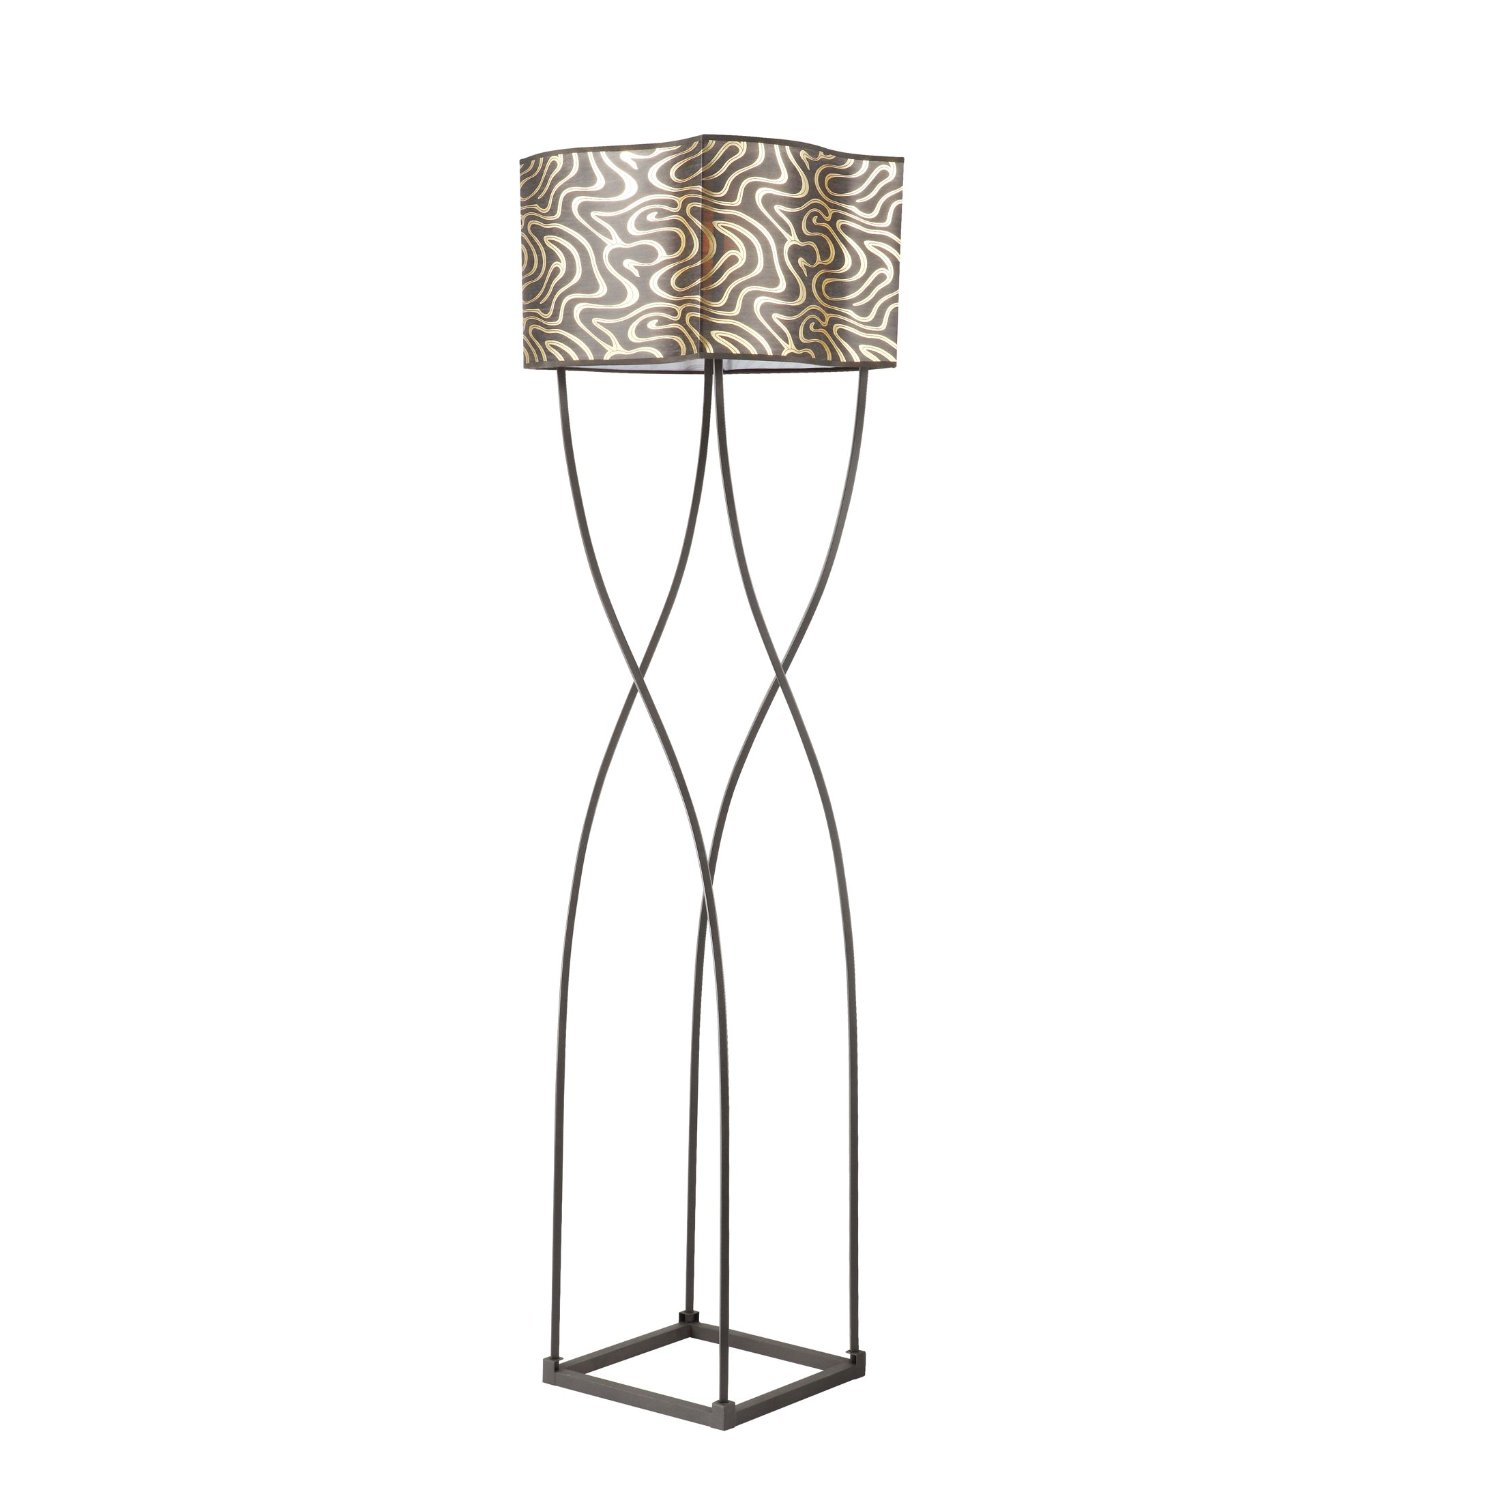 Art deco floor lamps 10 reasons to buy warisan lighting one attribute of art deco floor lamps is its enchanting look while making use of shapes such as this floor lamp geotapseo Images